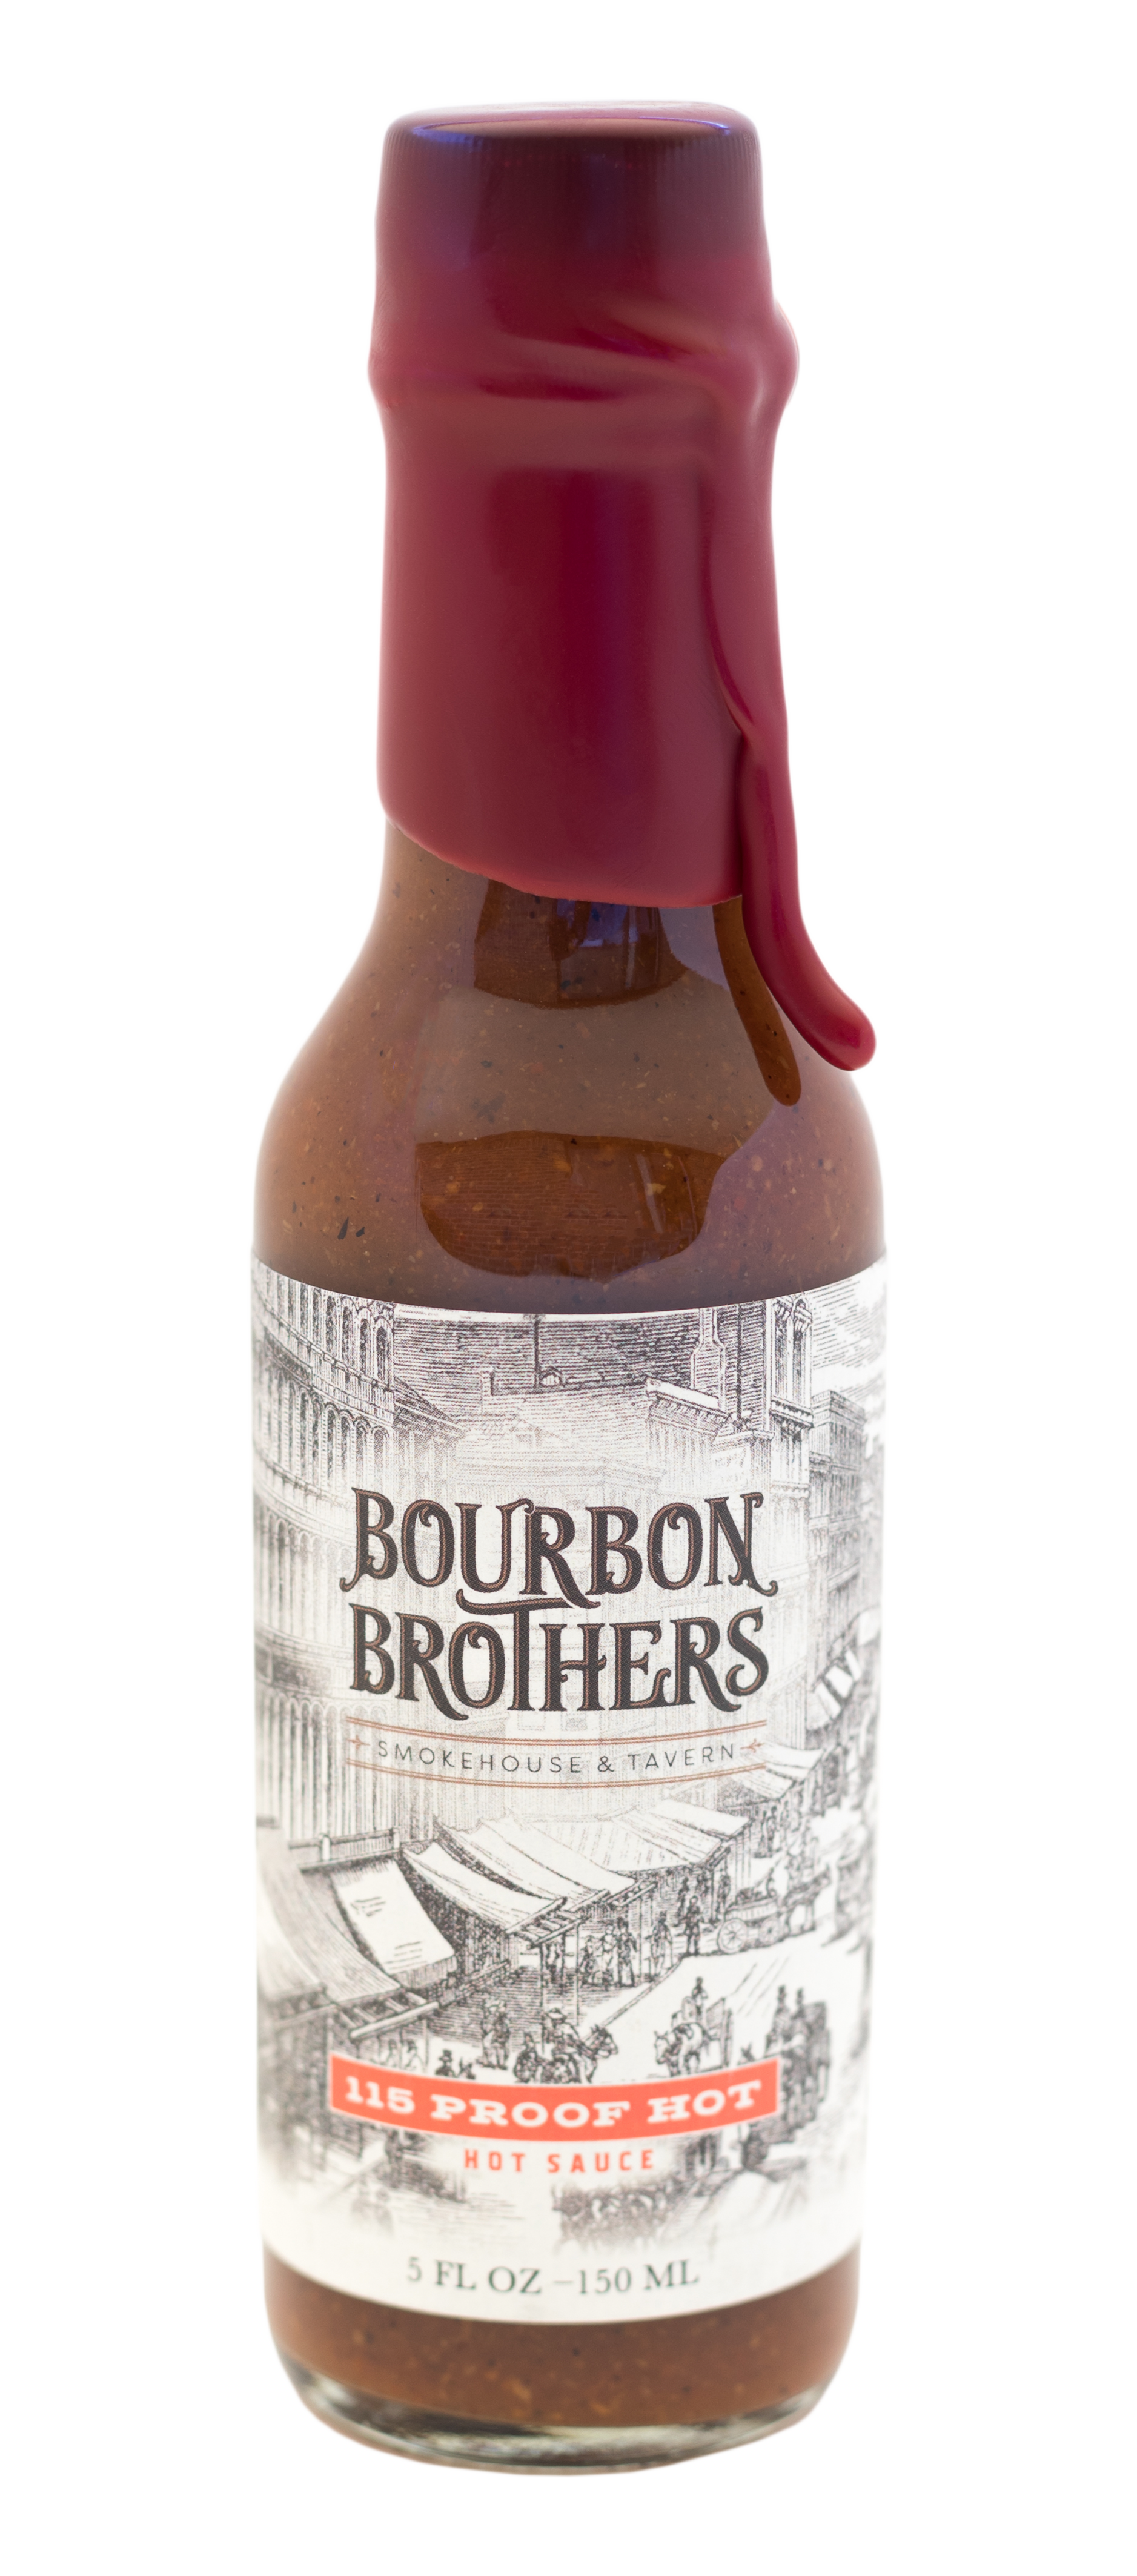 060518_BourbonBrothers_115ProofHot_CutOut copy.png